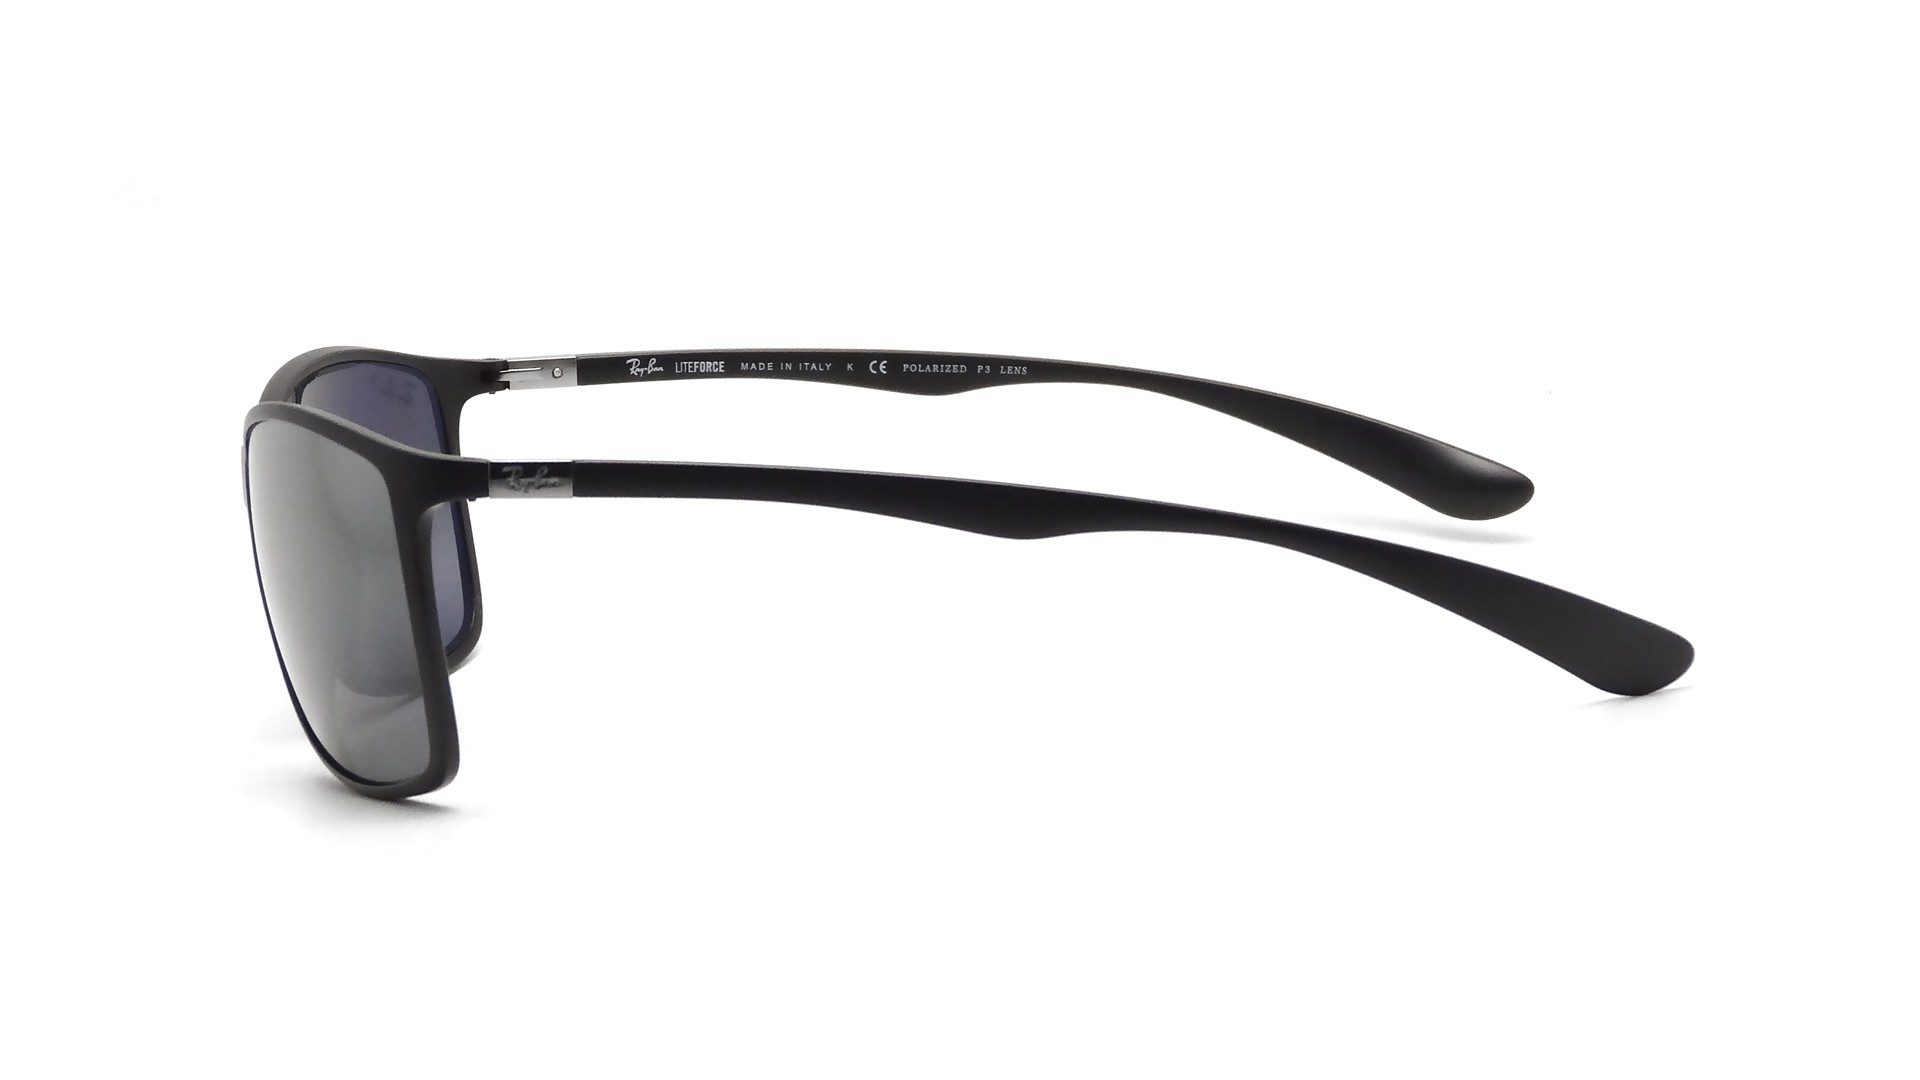 8110dcf2821 82 Ray Ban Size 62